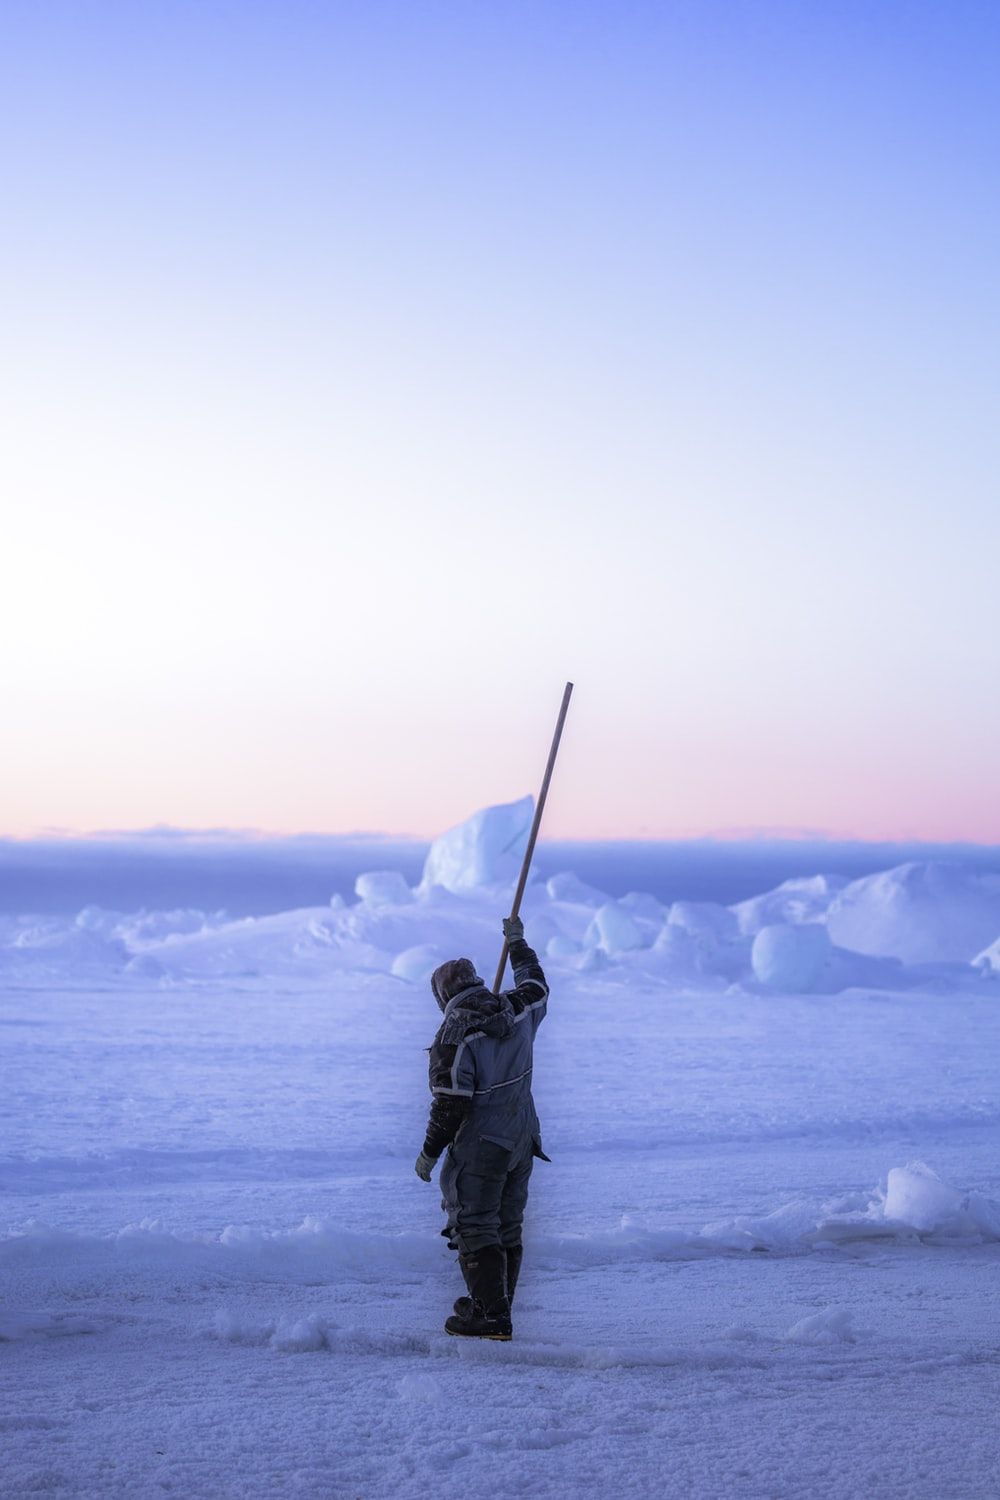 person in black winter jacket holding black stick on snow covered ground during daytime